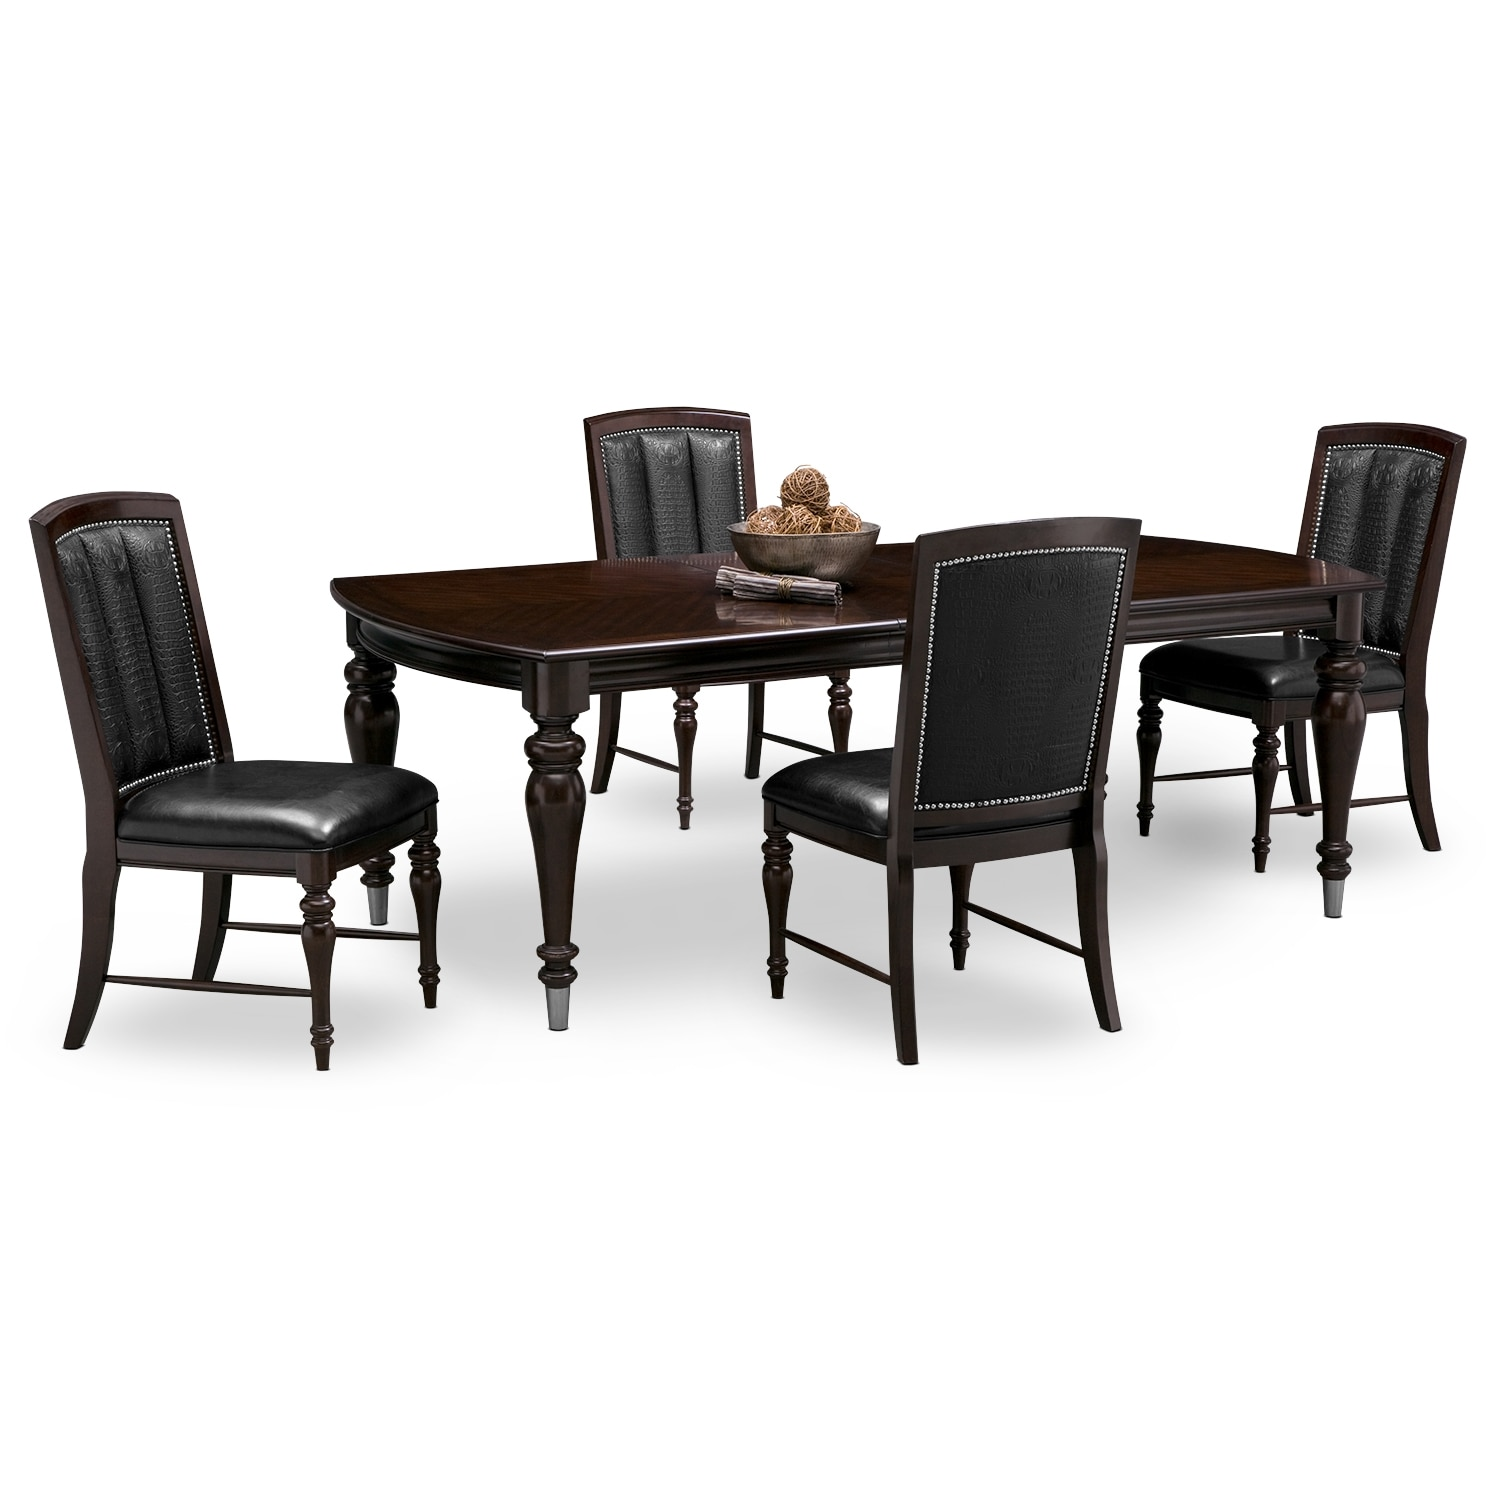 Esquire Table and 4 Chairs - Cherry